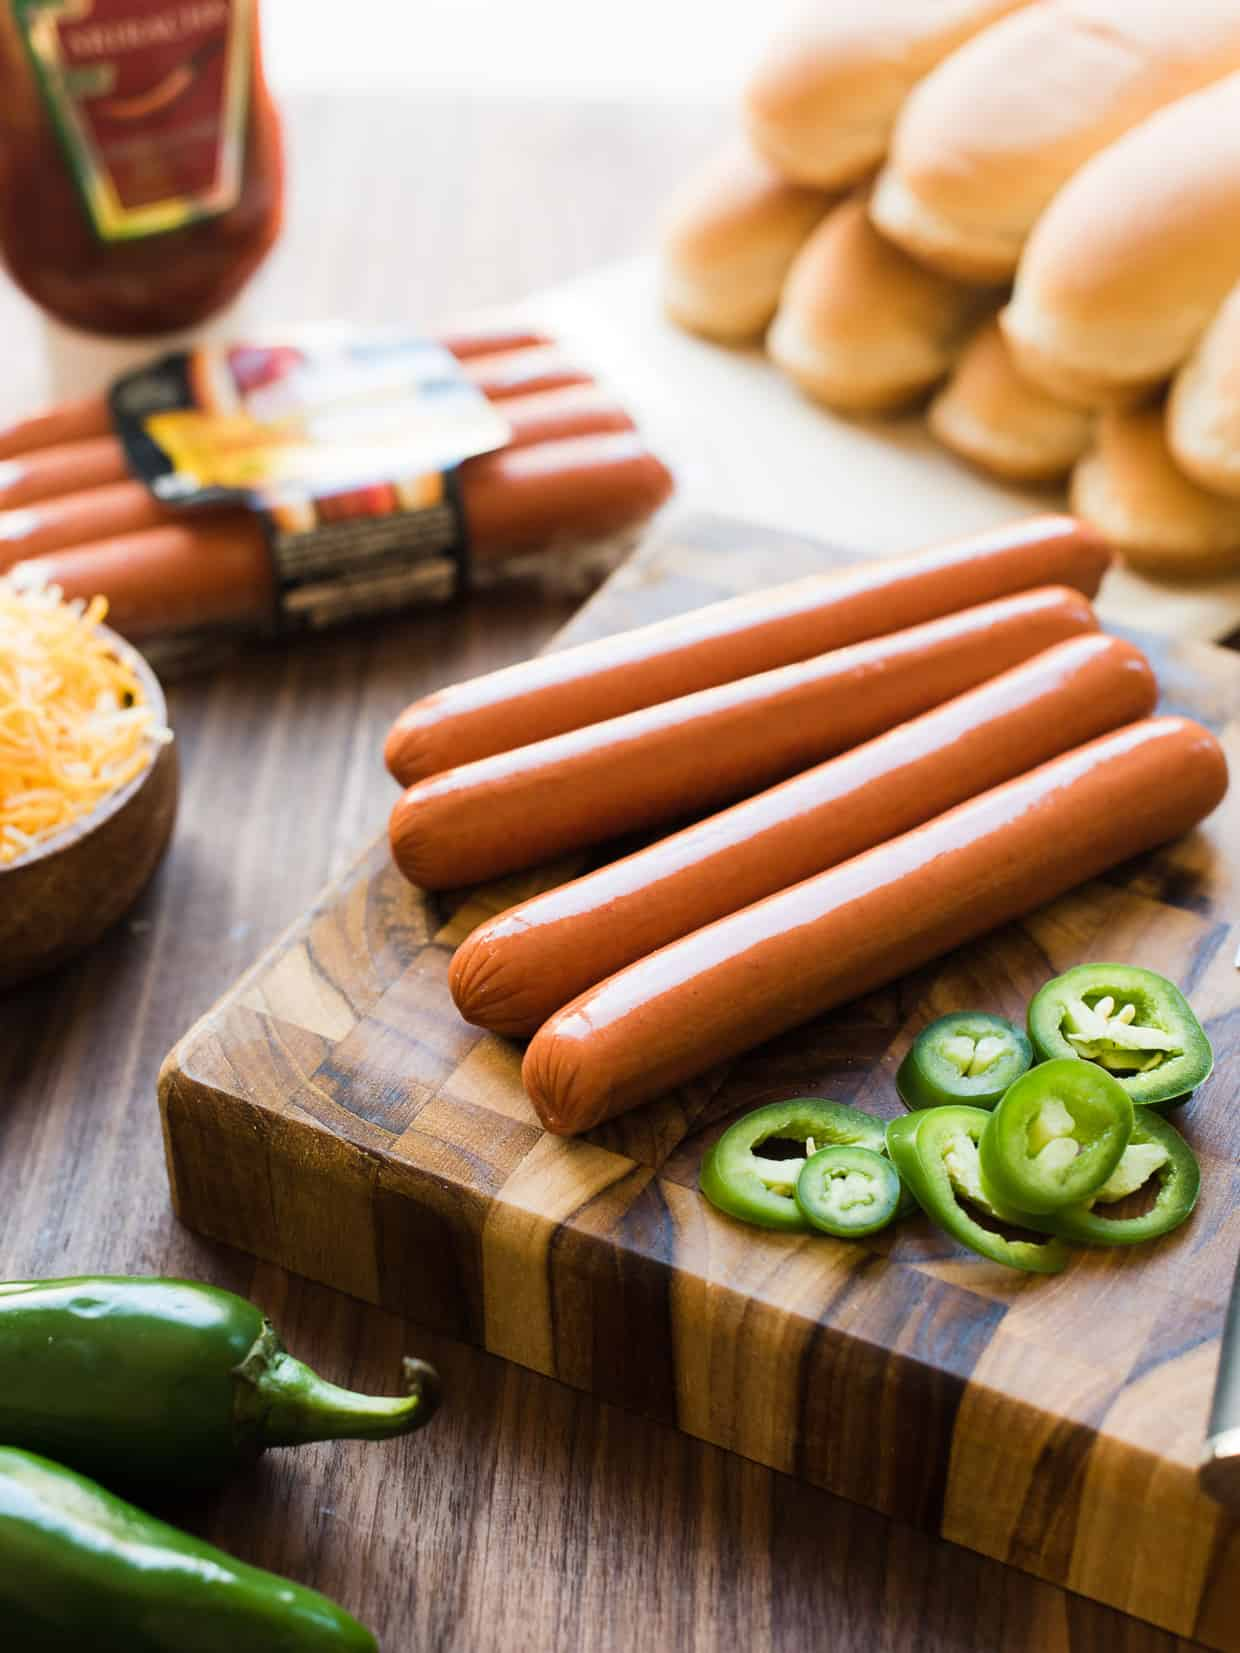 Hot dogs, buns, cheese, jalapeños, and Sriracha ketchup on a wooden board.